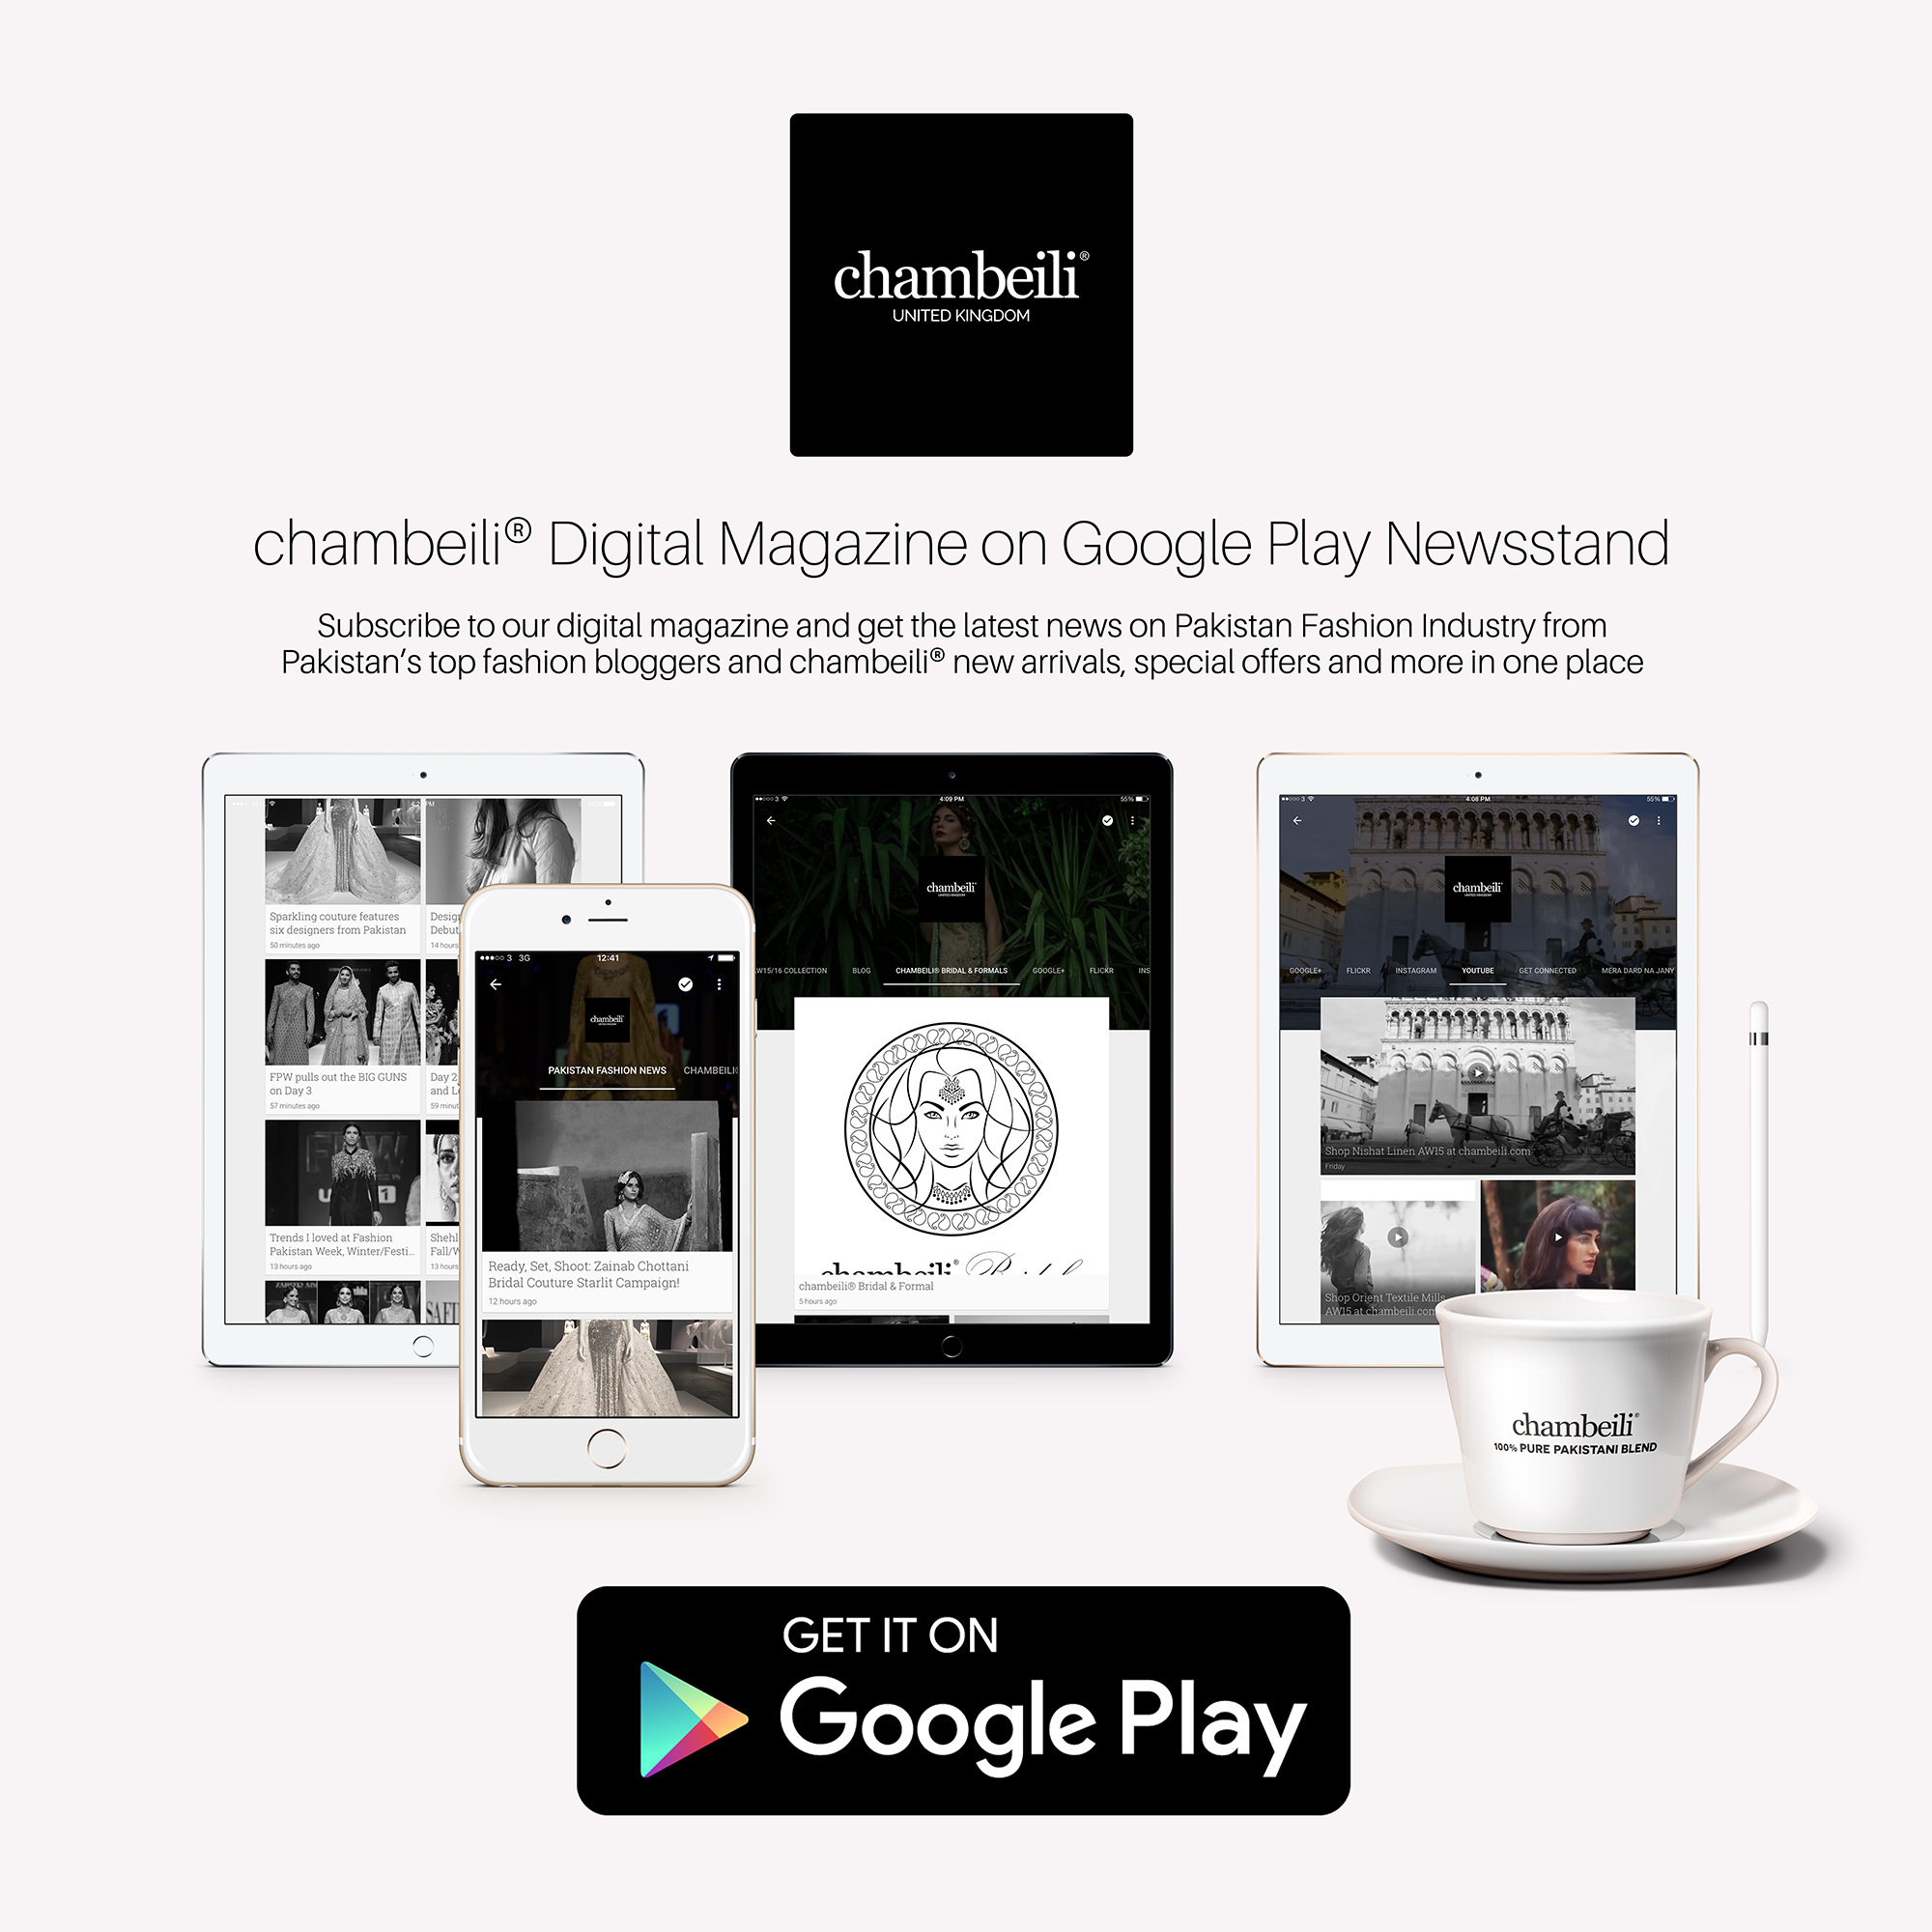 chambeili® Digital Magazine on Google Play Newsstand